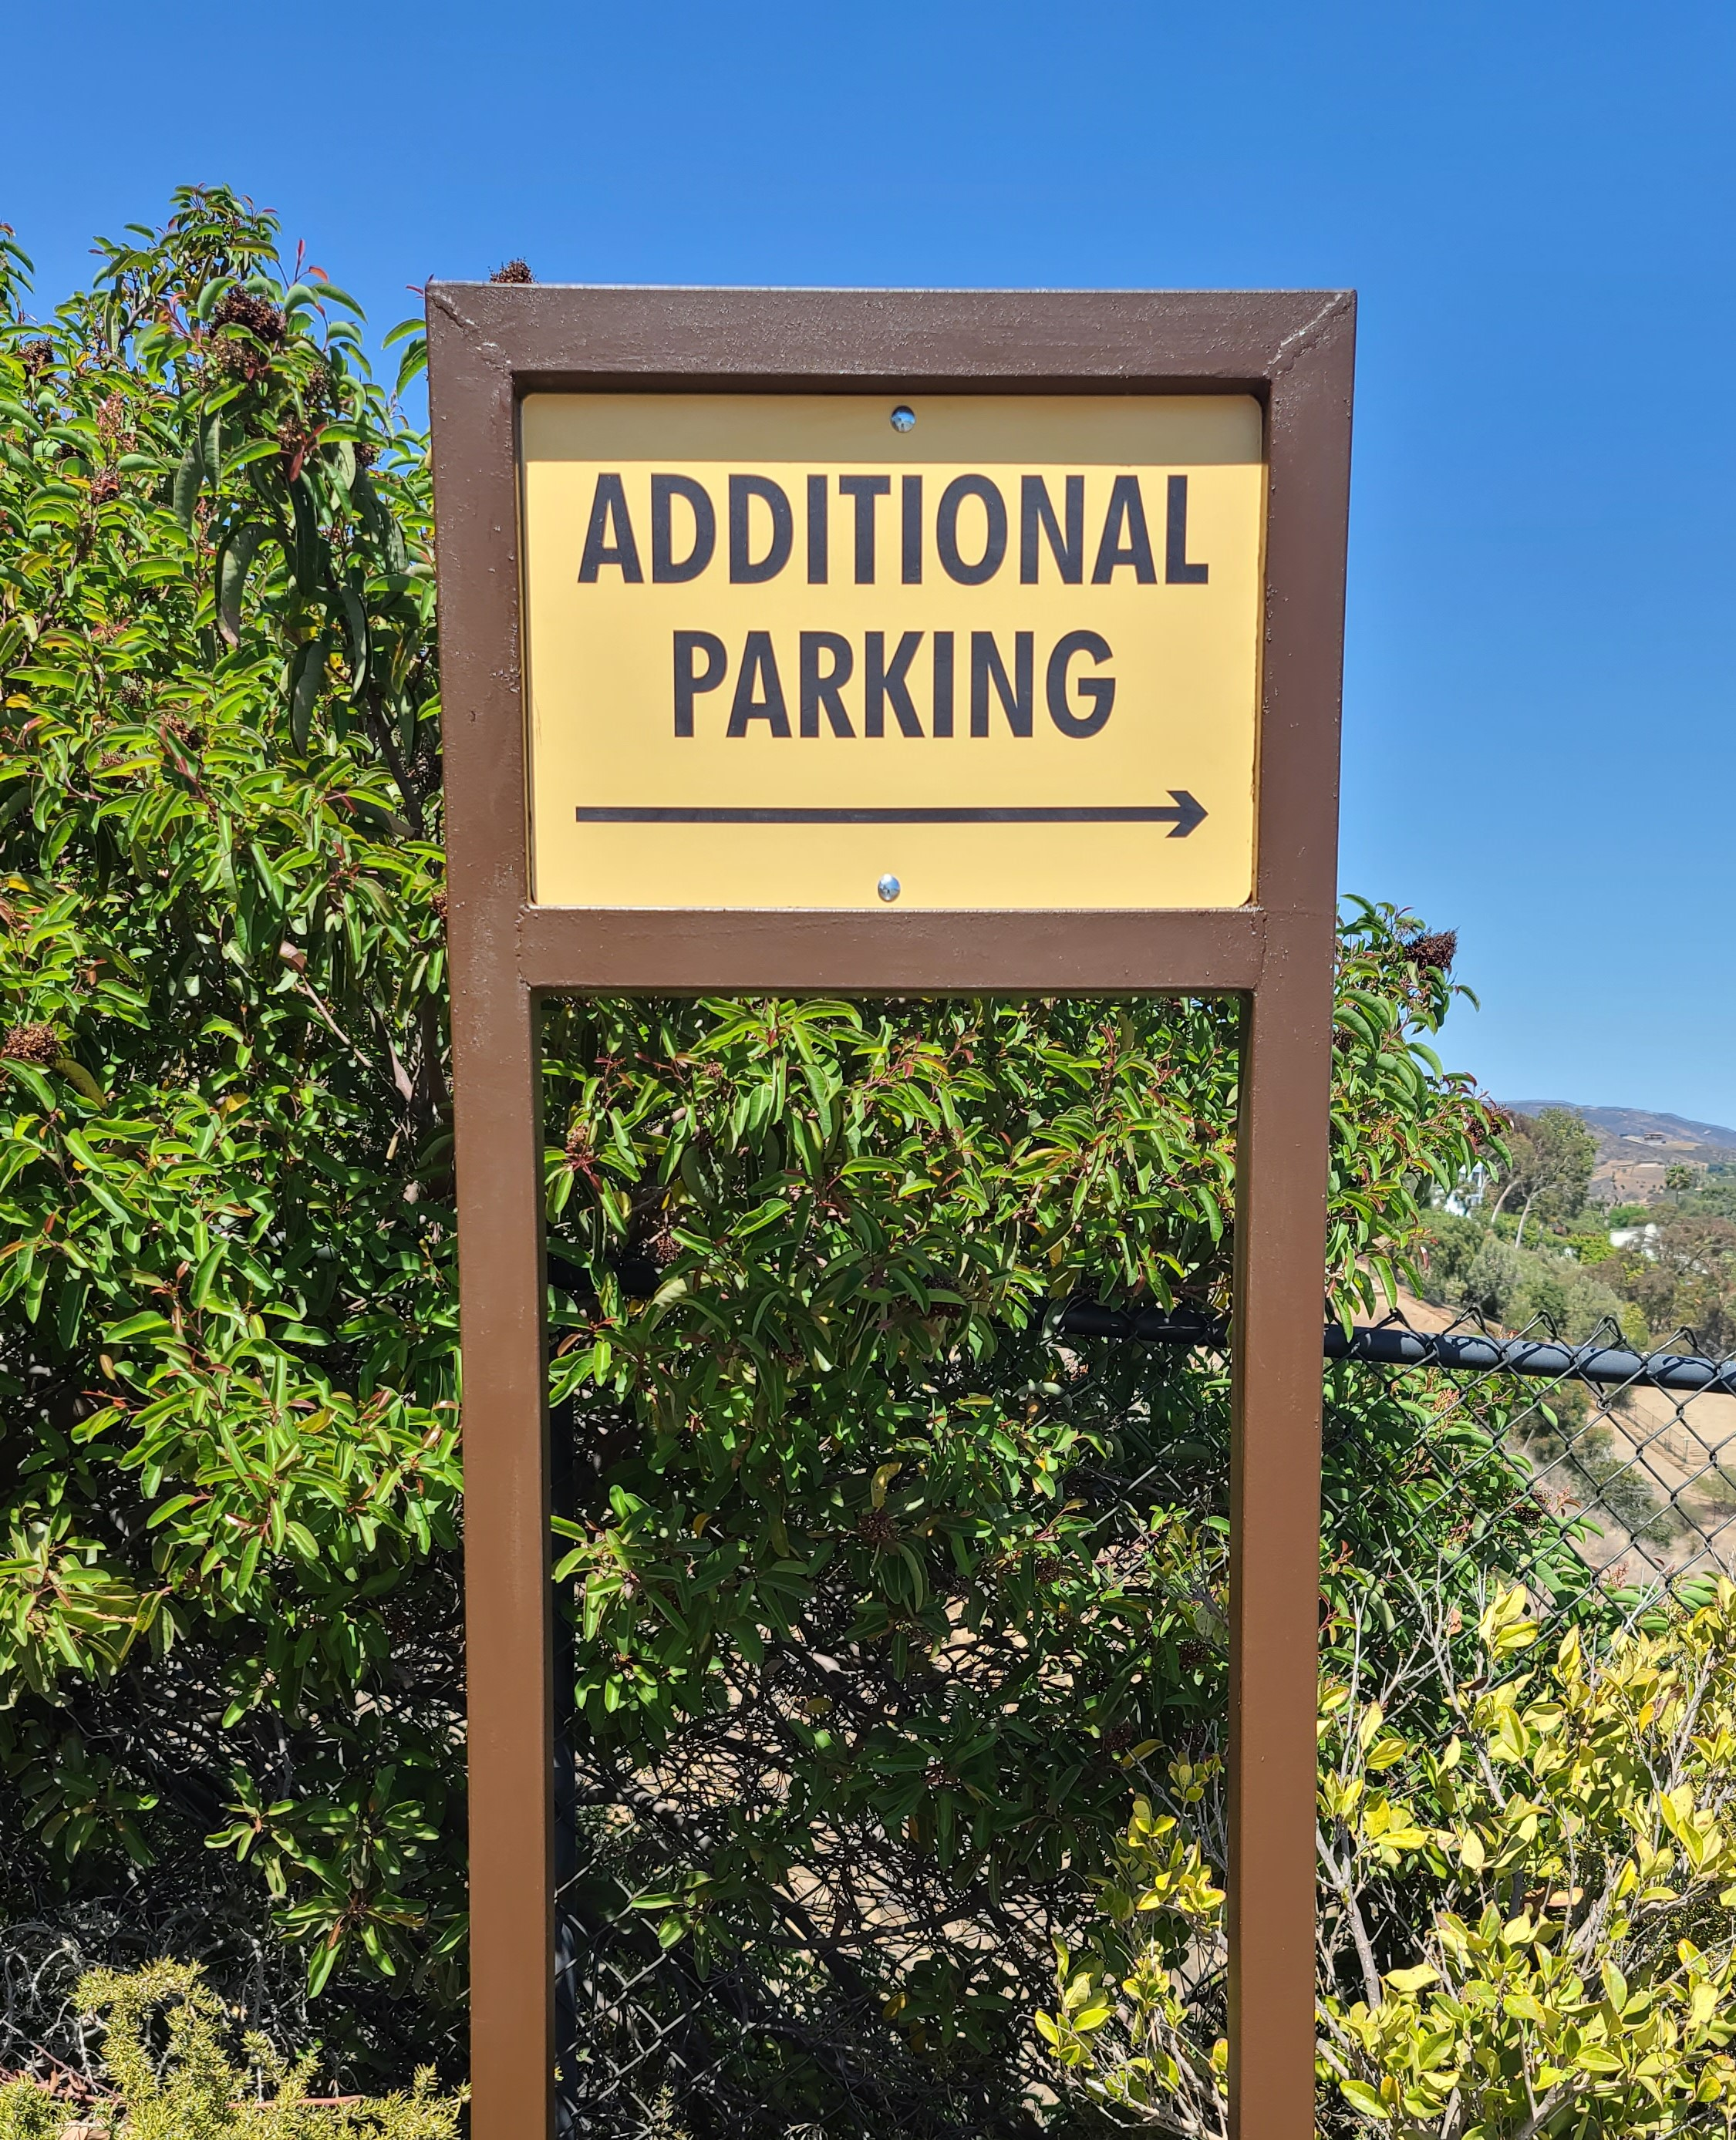 These additional parking signs for Malibu Pacific Church are part of our comprehensive sign package, helping visitors find space for their vehicles.